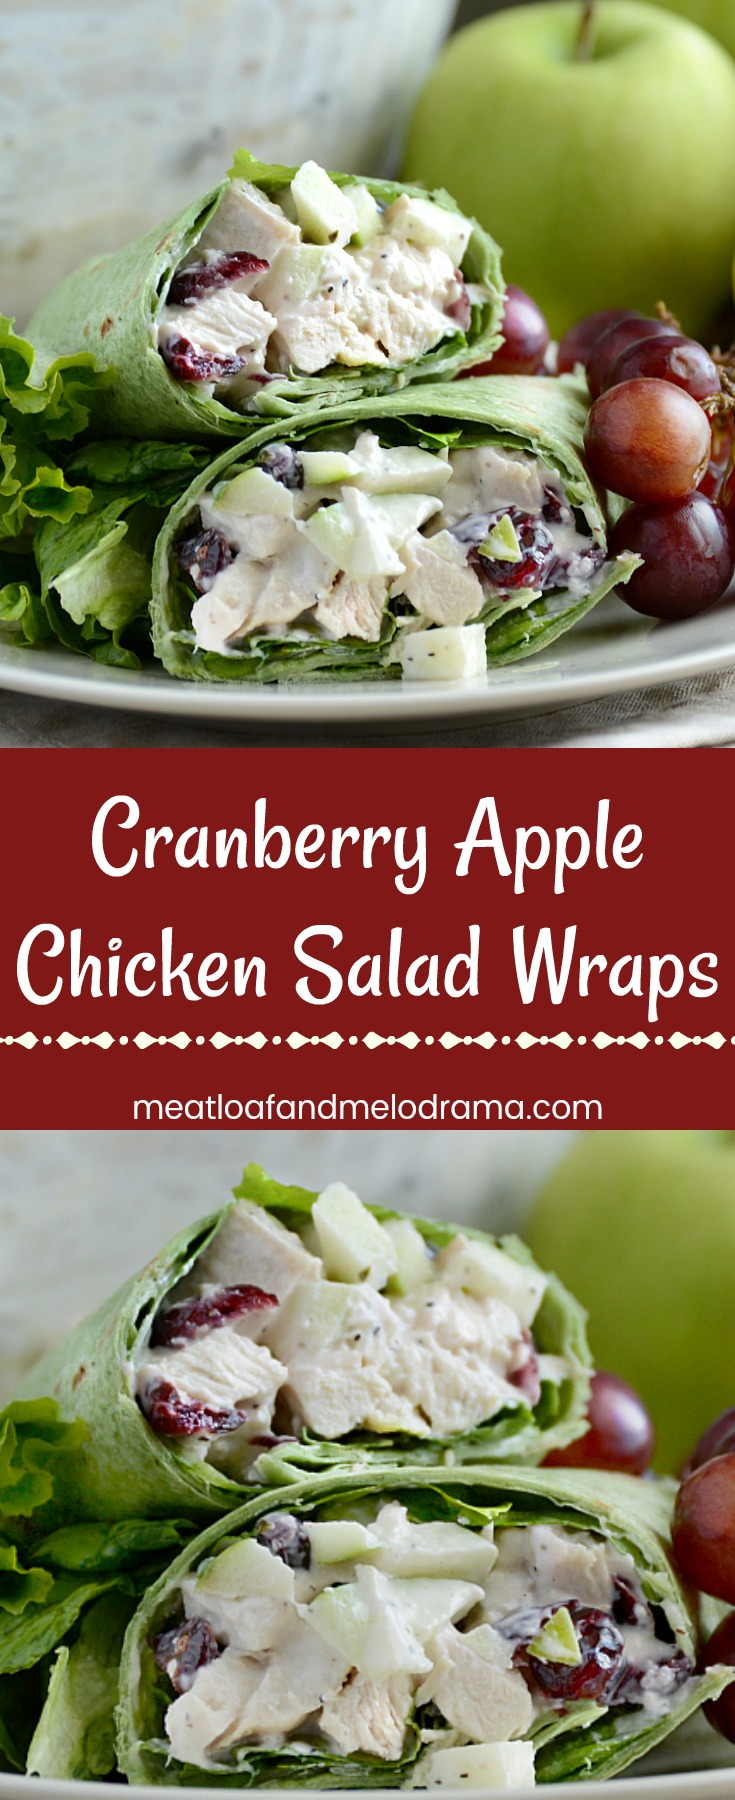 Cranberry Apple Chicken Salad Wraps